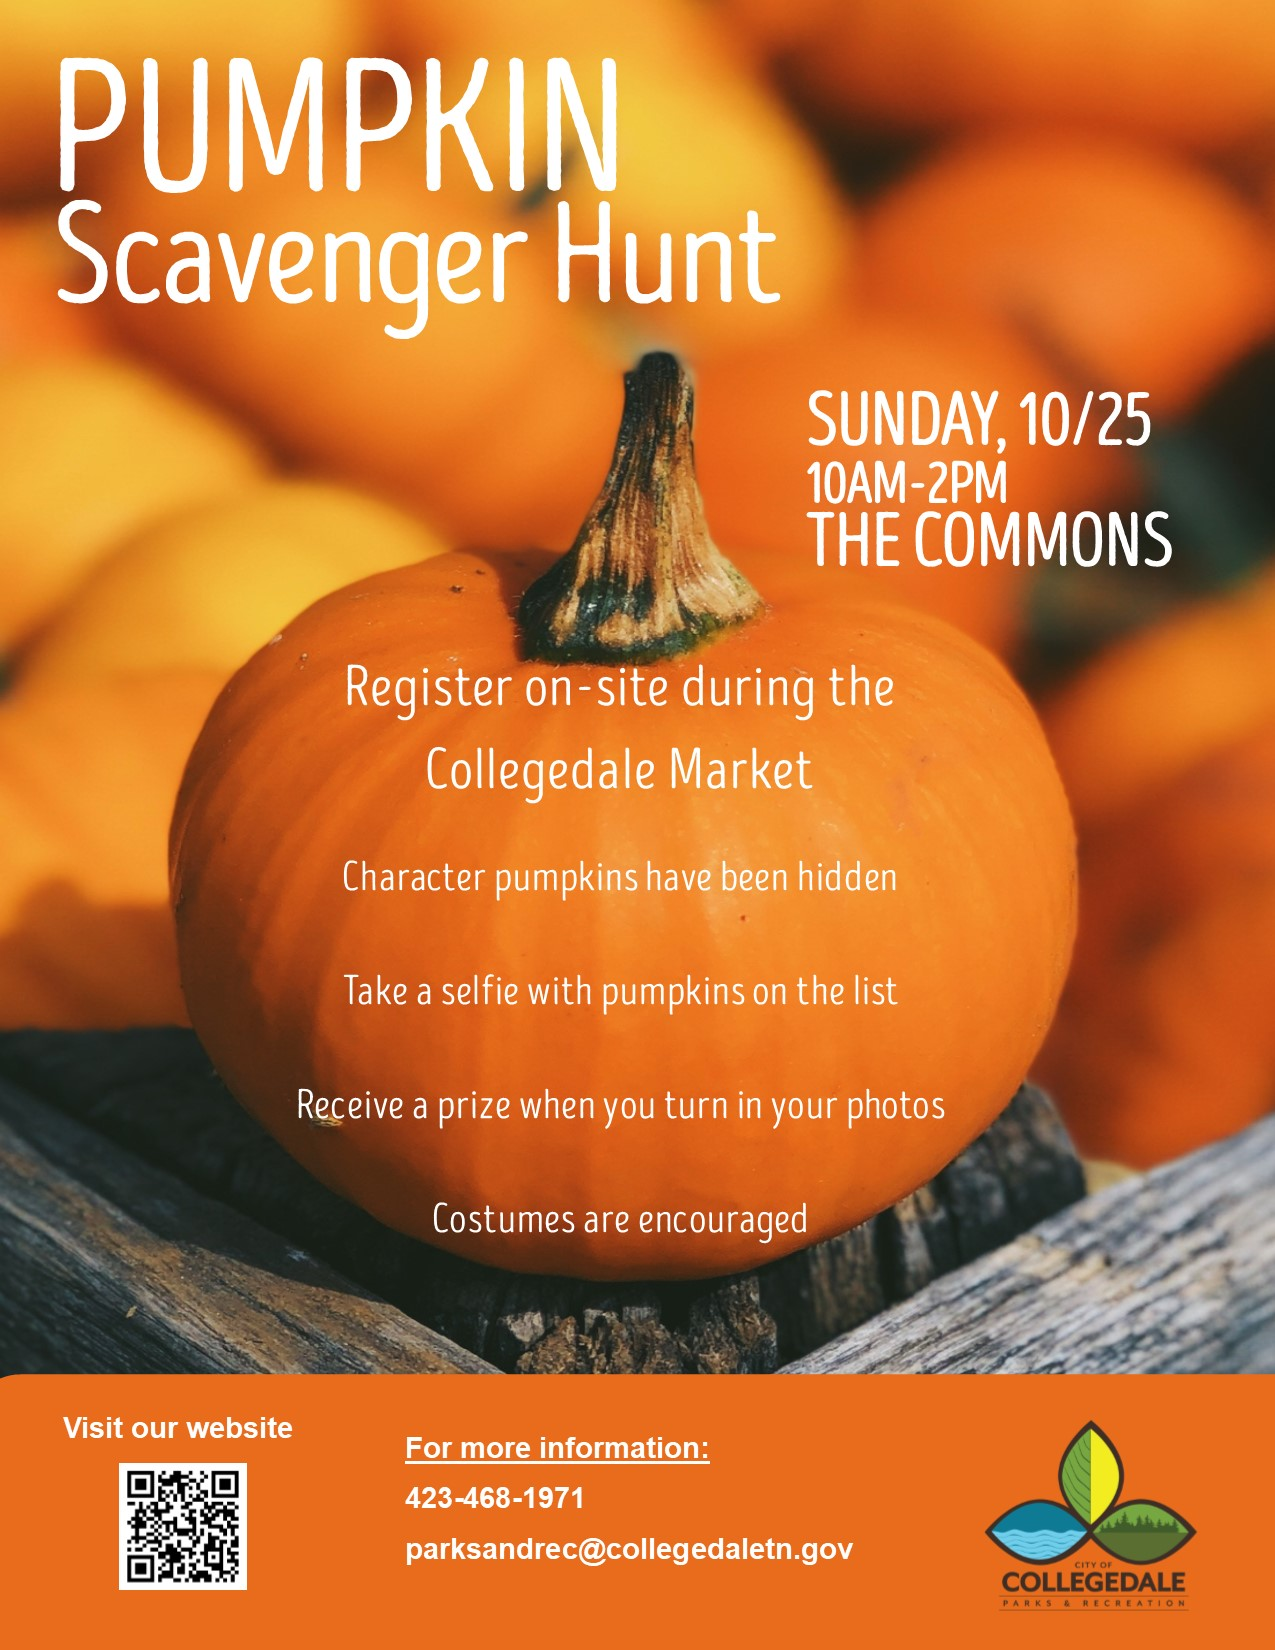 Pumpkin-Scavenger-Hunt-2020